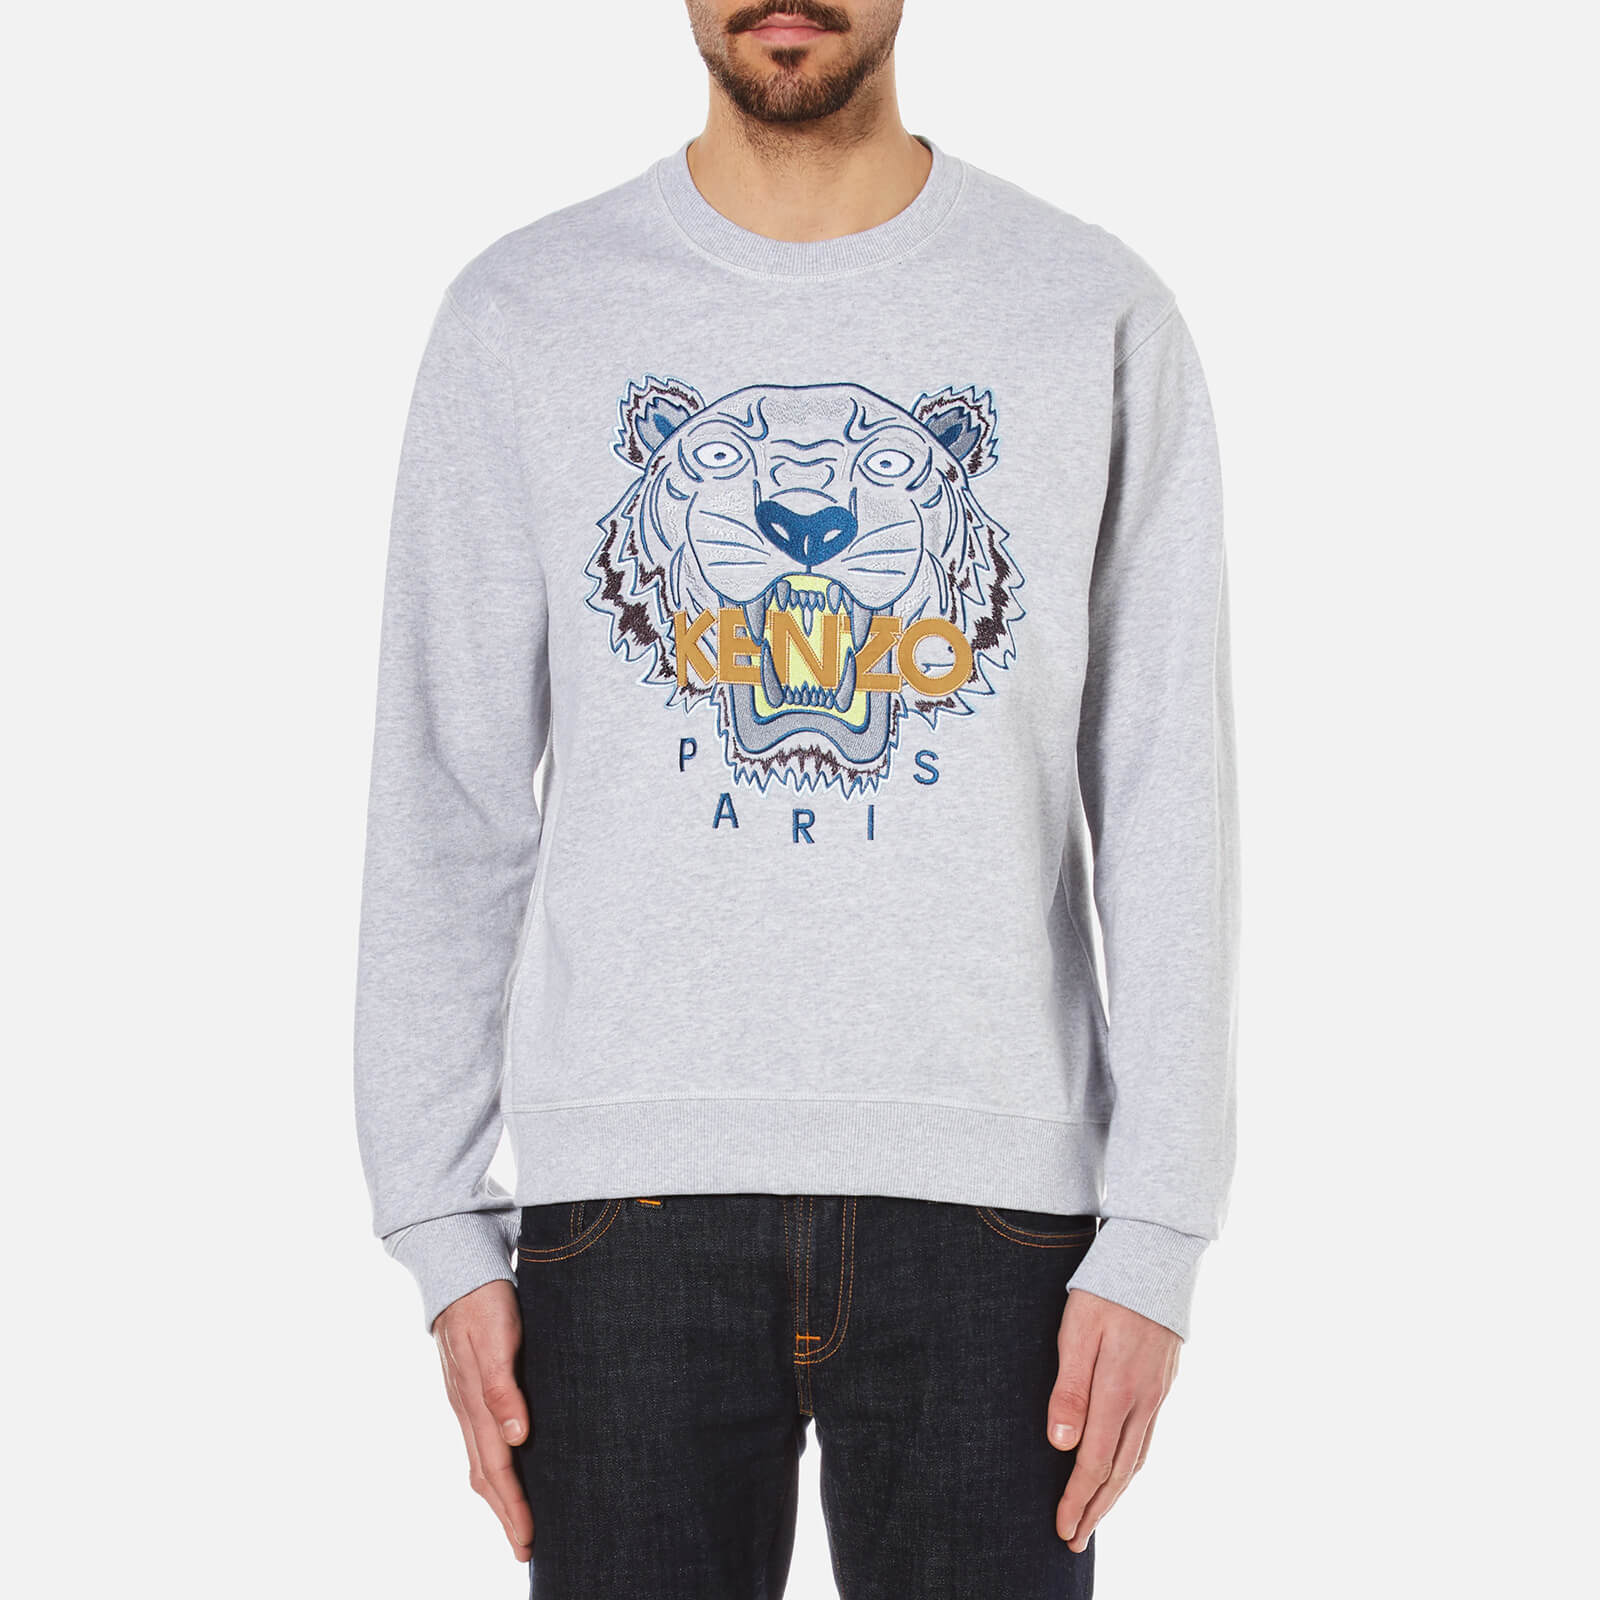 46f758e9227b KENZO Men s Embroidered Tiger Sweatshirt - Pearl Grey - Free UK Delivery  over £50